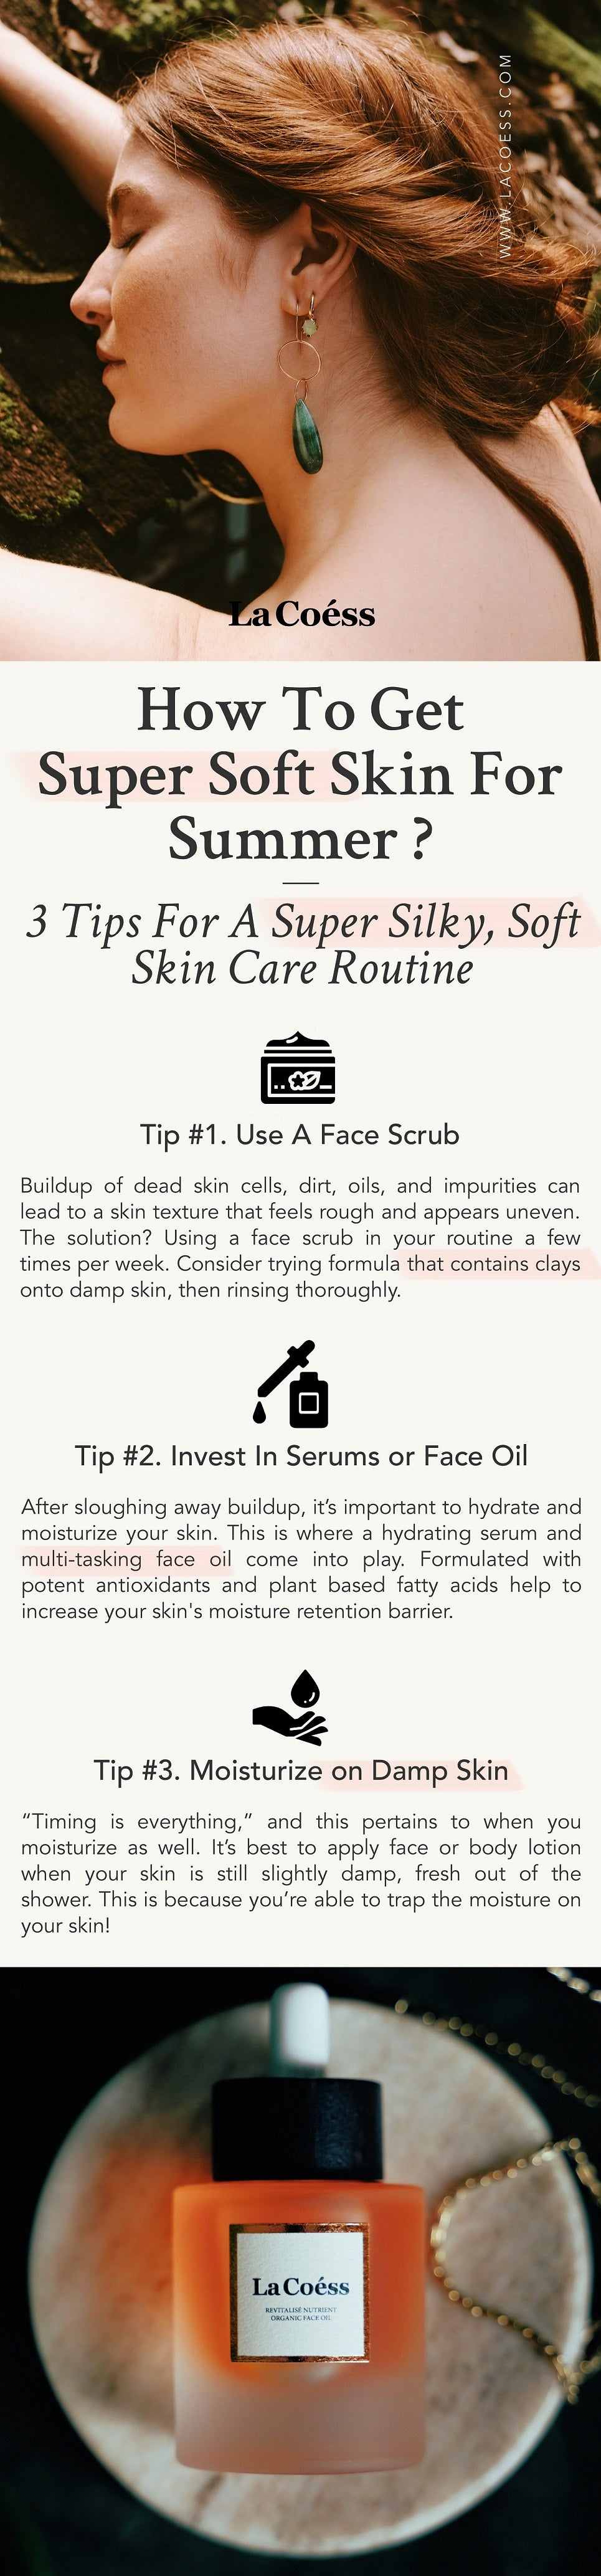 How To Get Super Soft Skin For Summer